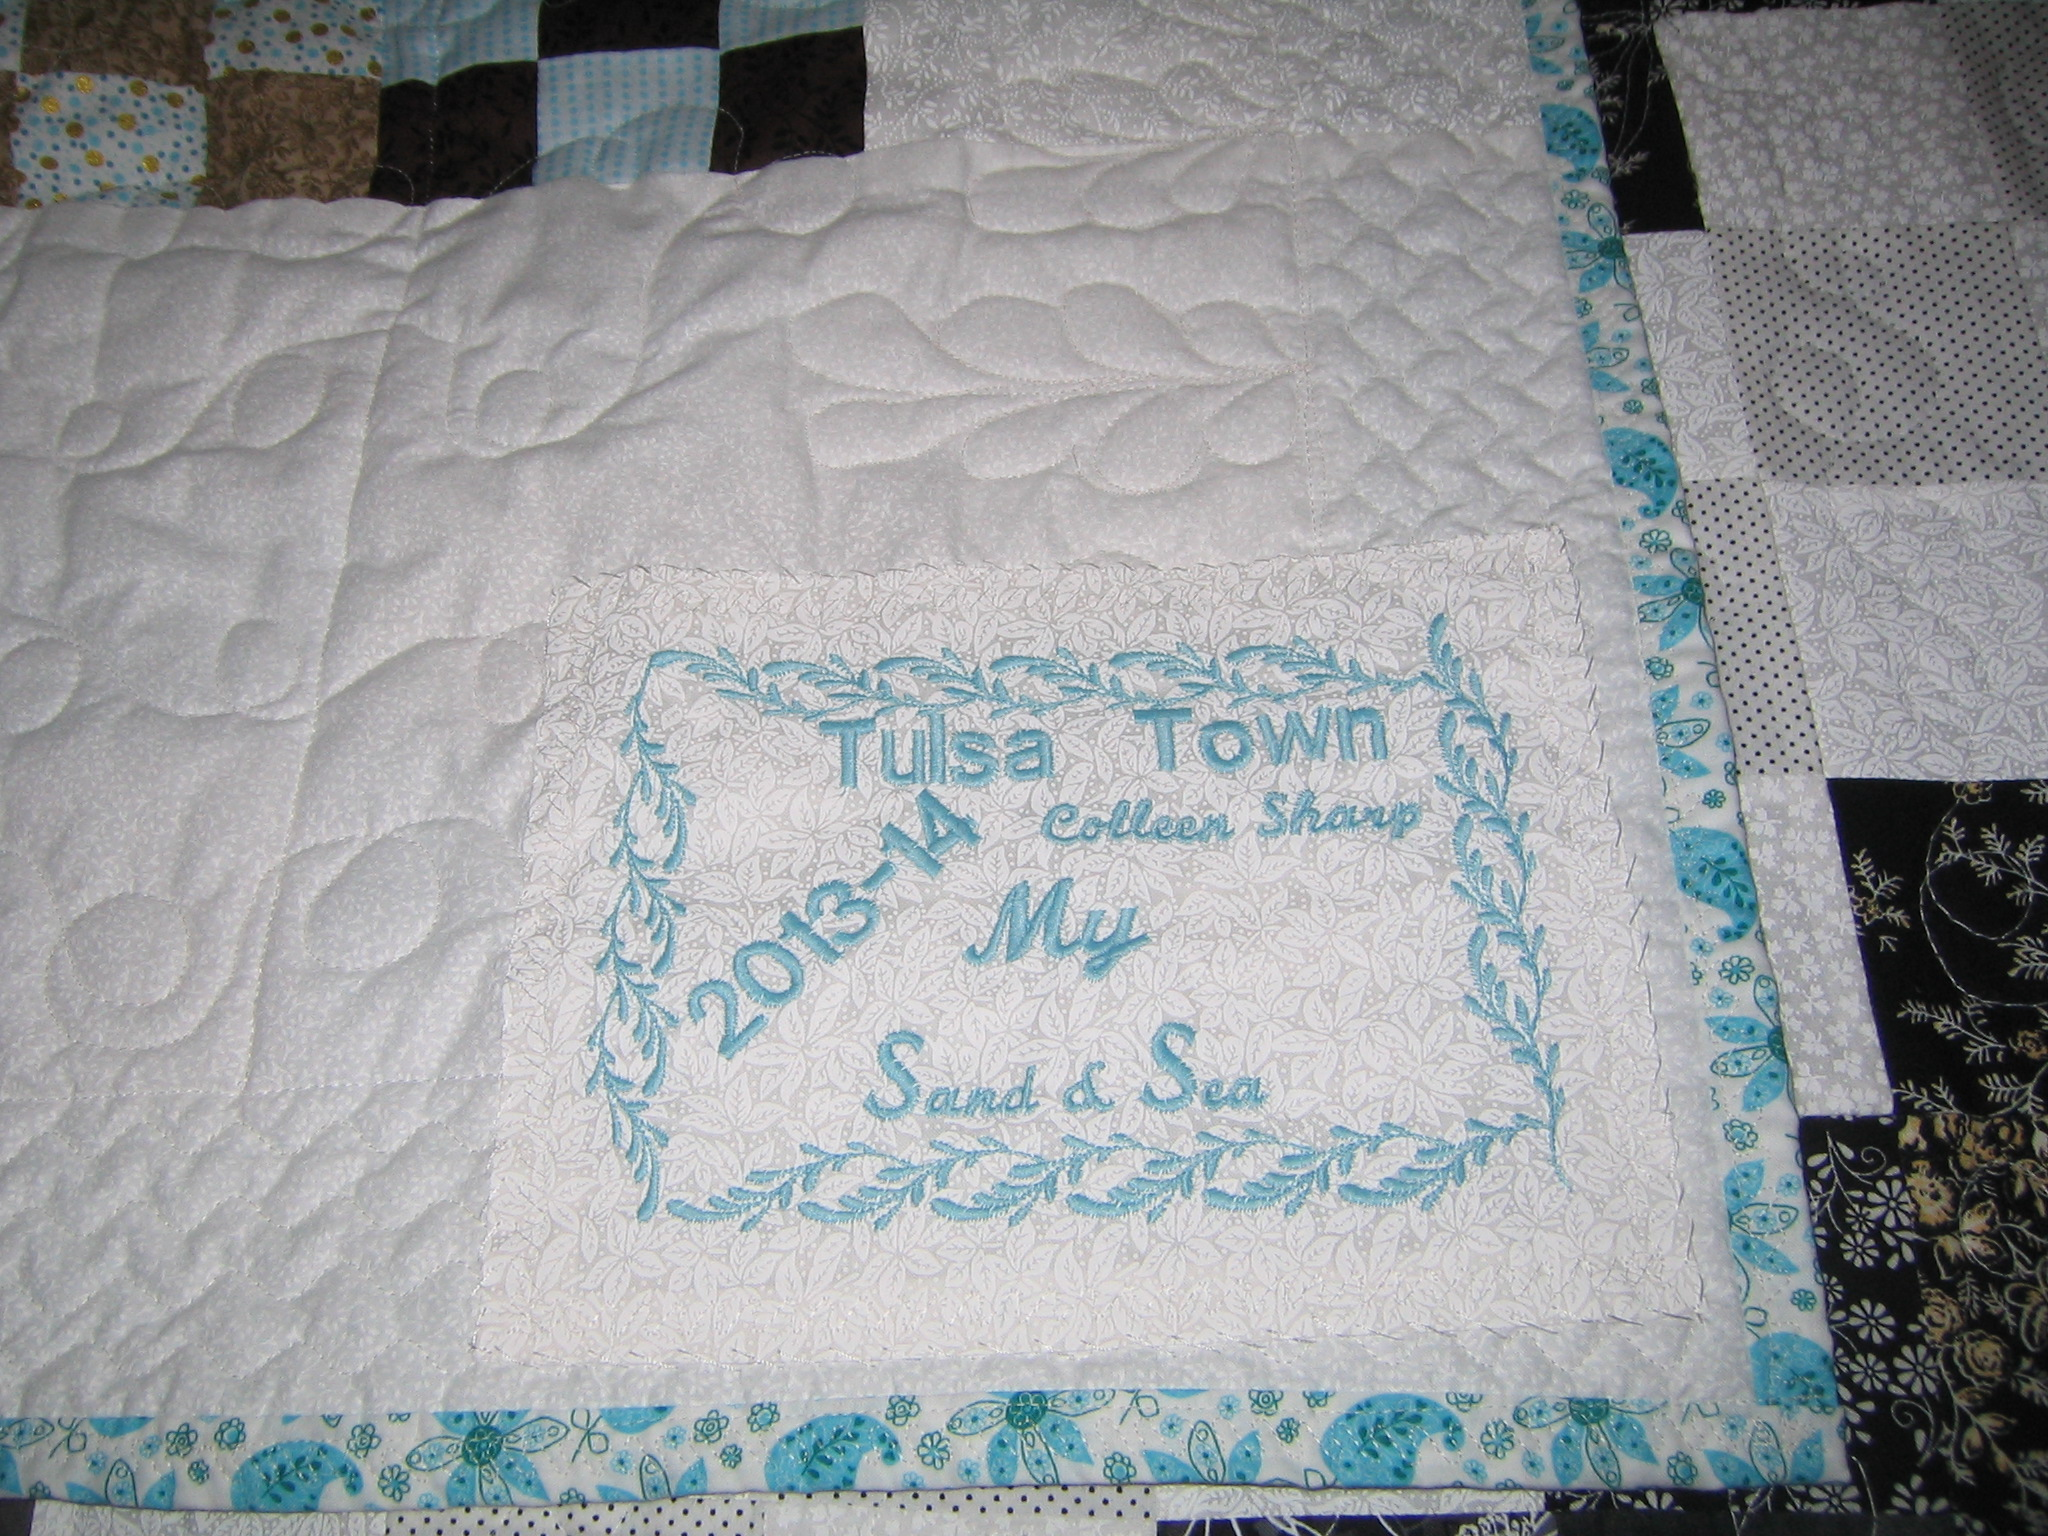 Name:  Sand and Sea quilt winter 2013-14 001.JPG Views: 3966 Size:  1.02 MB